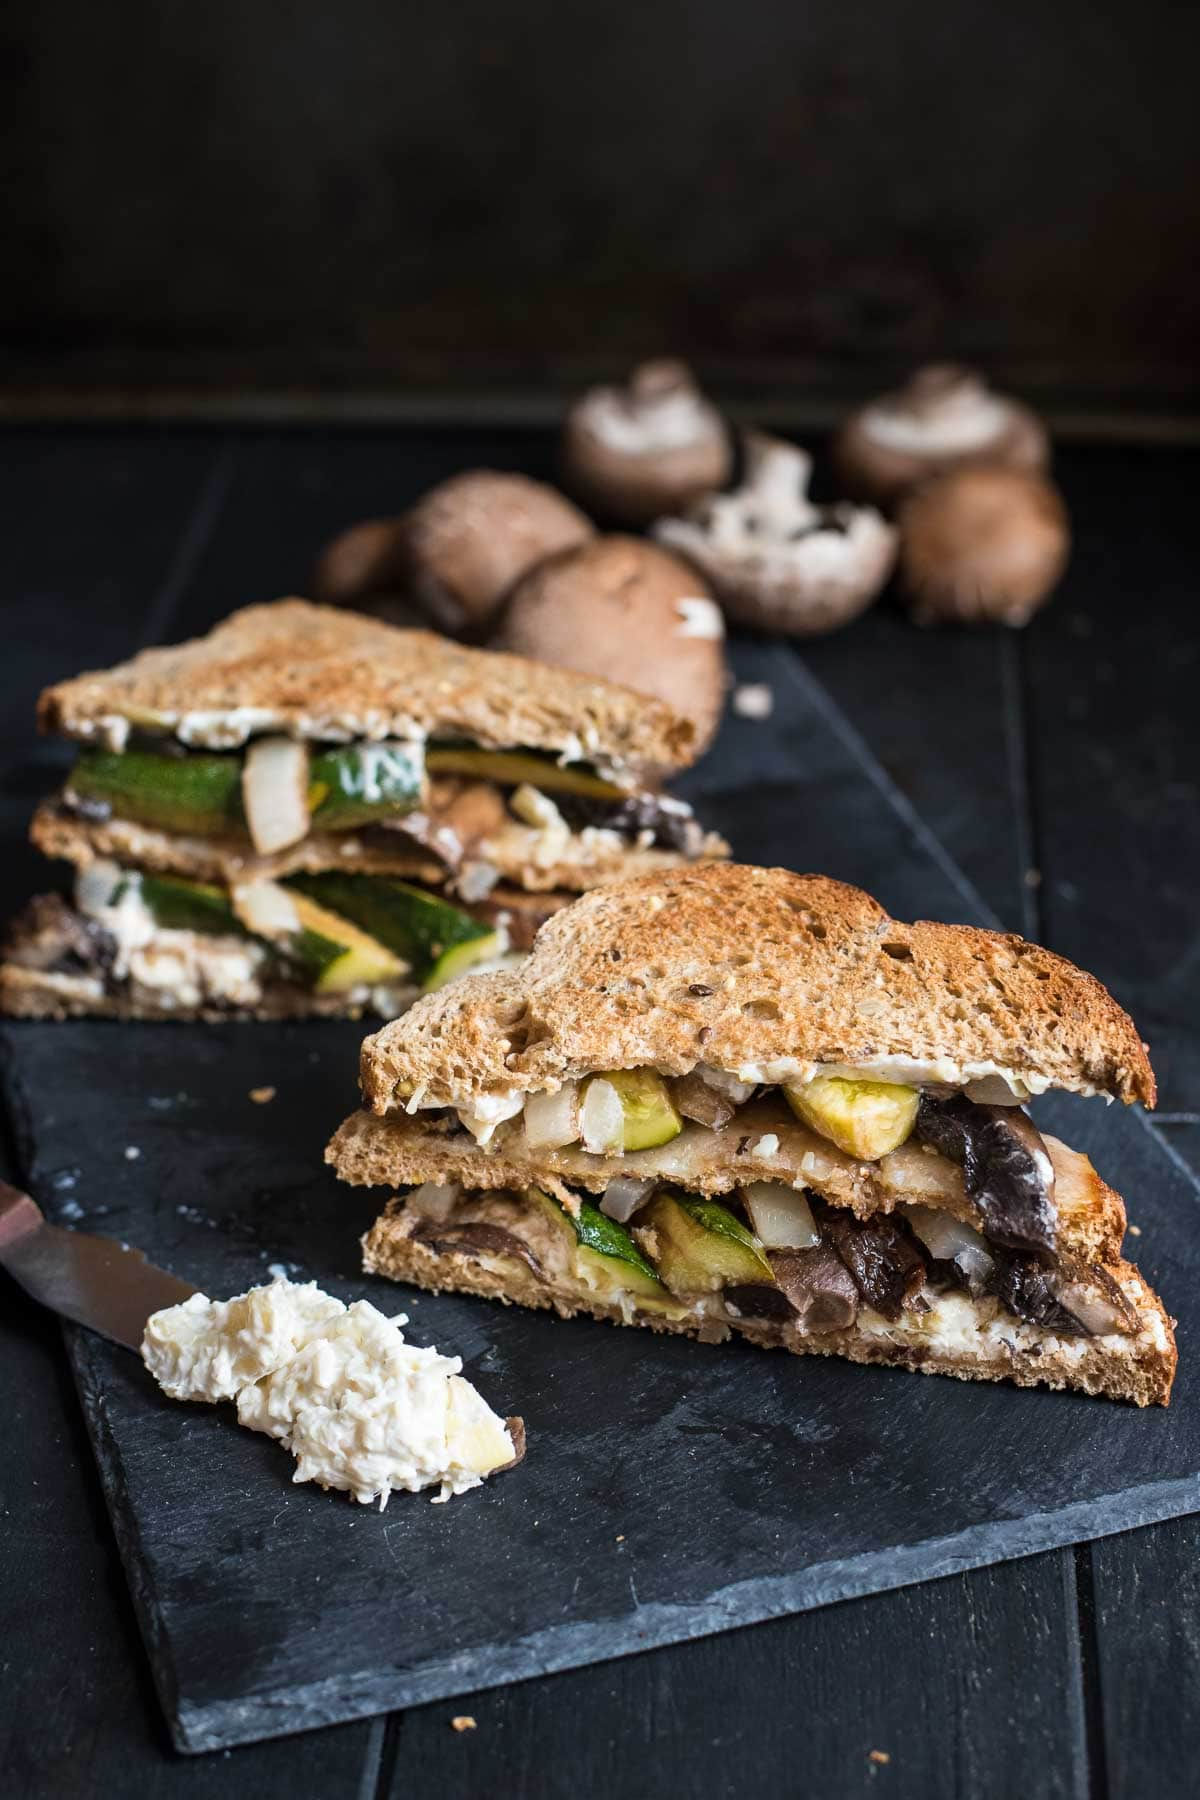 This Veggie Sandwich is loaded with roasted portabello mushrooms, zucchini, onions, and a creamy spread!